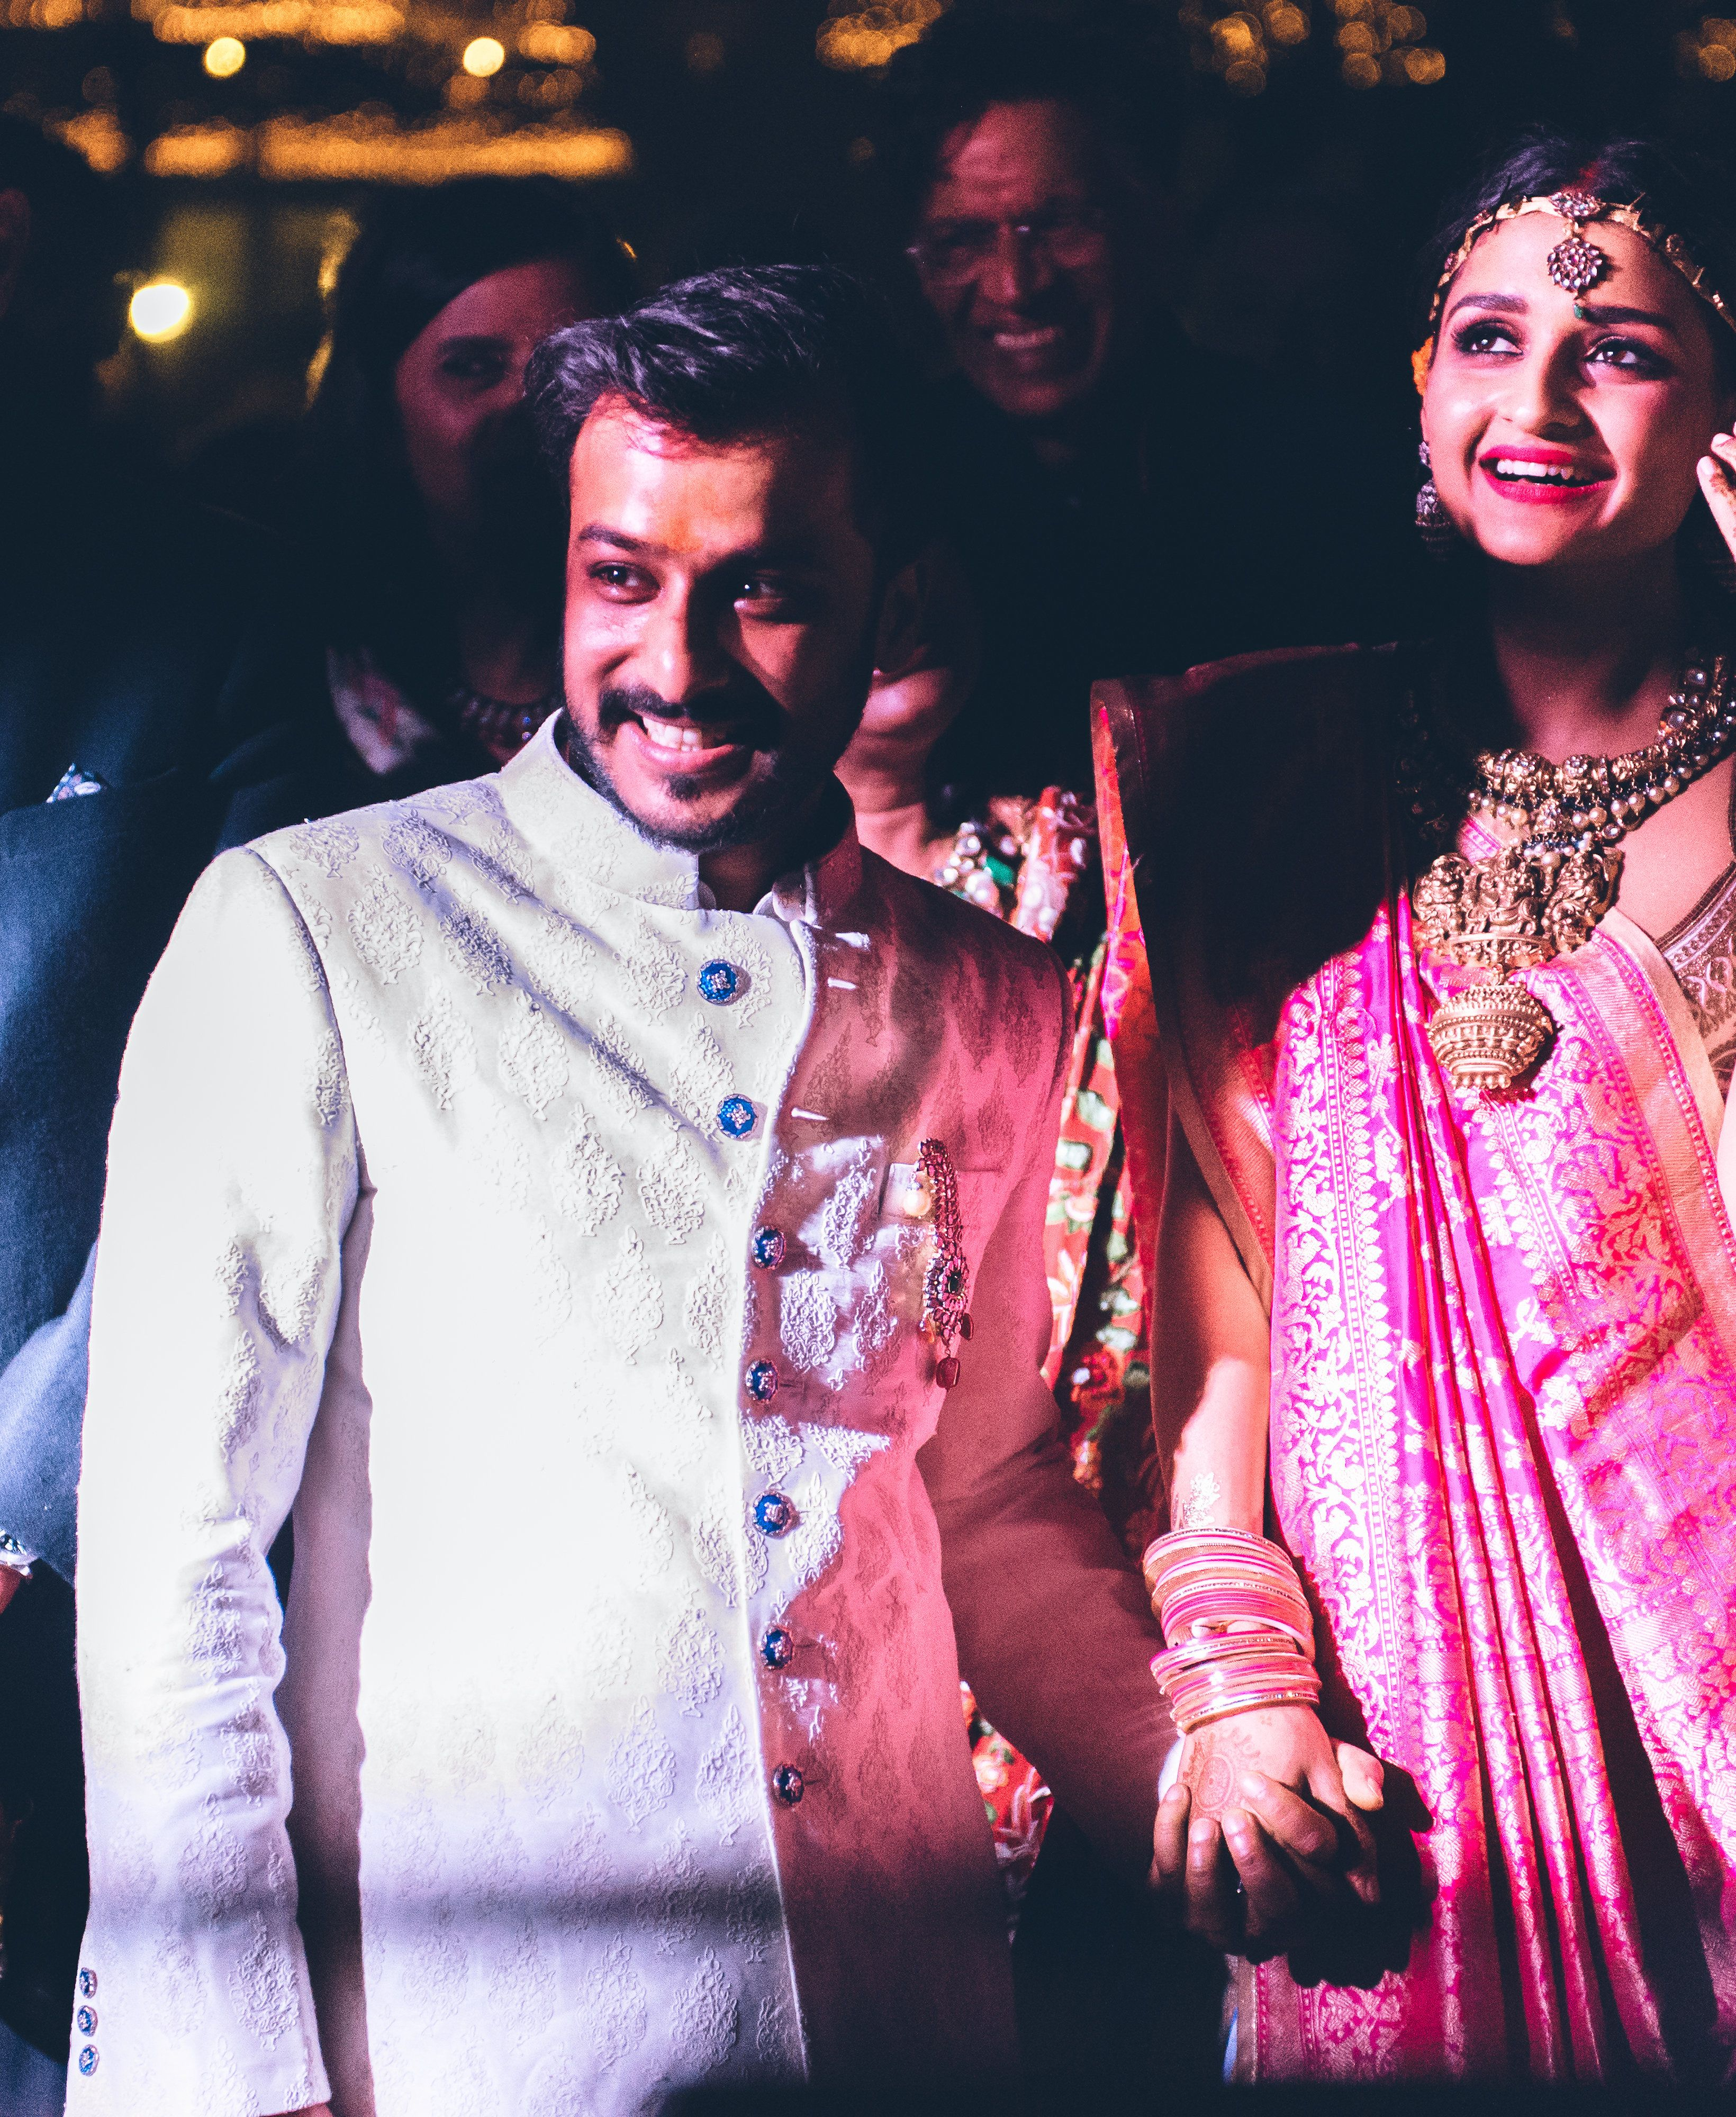 Ashwin wore a paisley jacquard achkan, or knee-length jacket, by Raghavendra Rathore for the wedding. He started the evening wearing a turban with a sarpanch, or turban pin, but when he took it off he pinned the piece to his achkan. The pin was made of rubies, diamonds, and emeralds, and was from the Gem Palace.